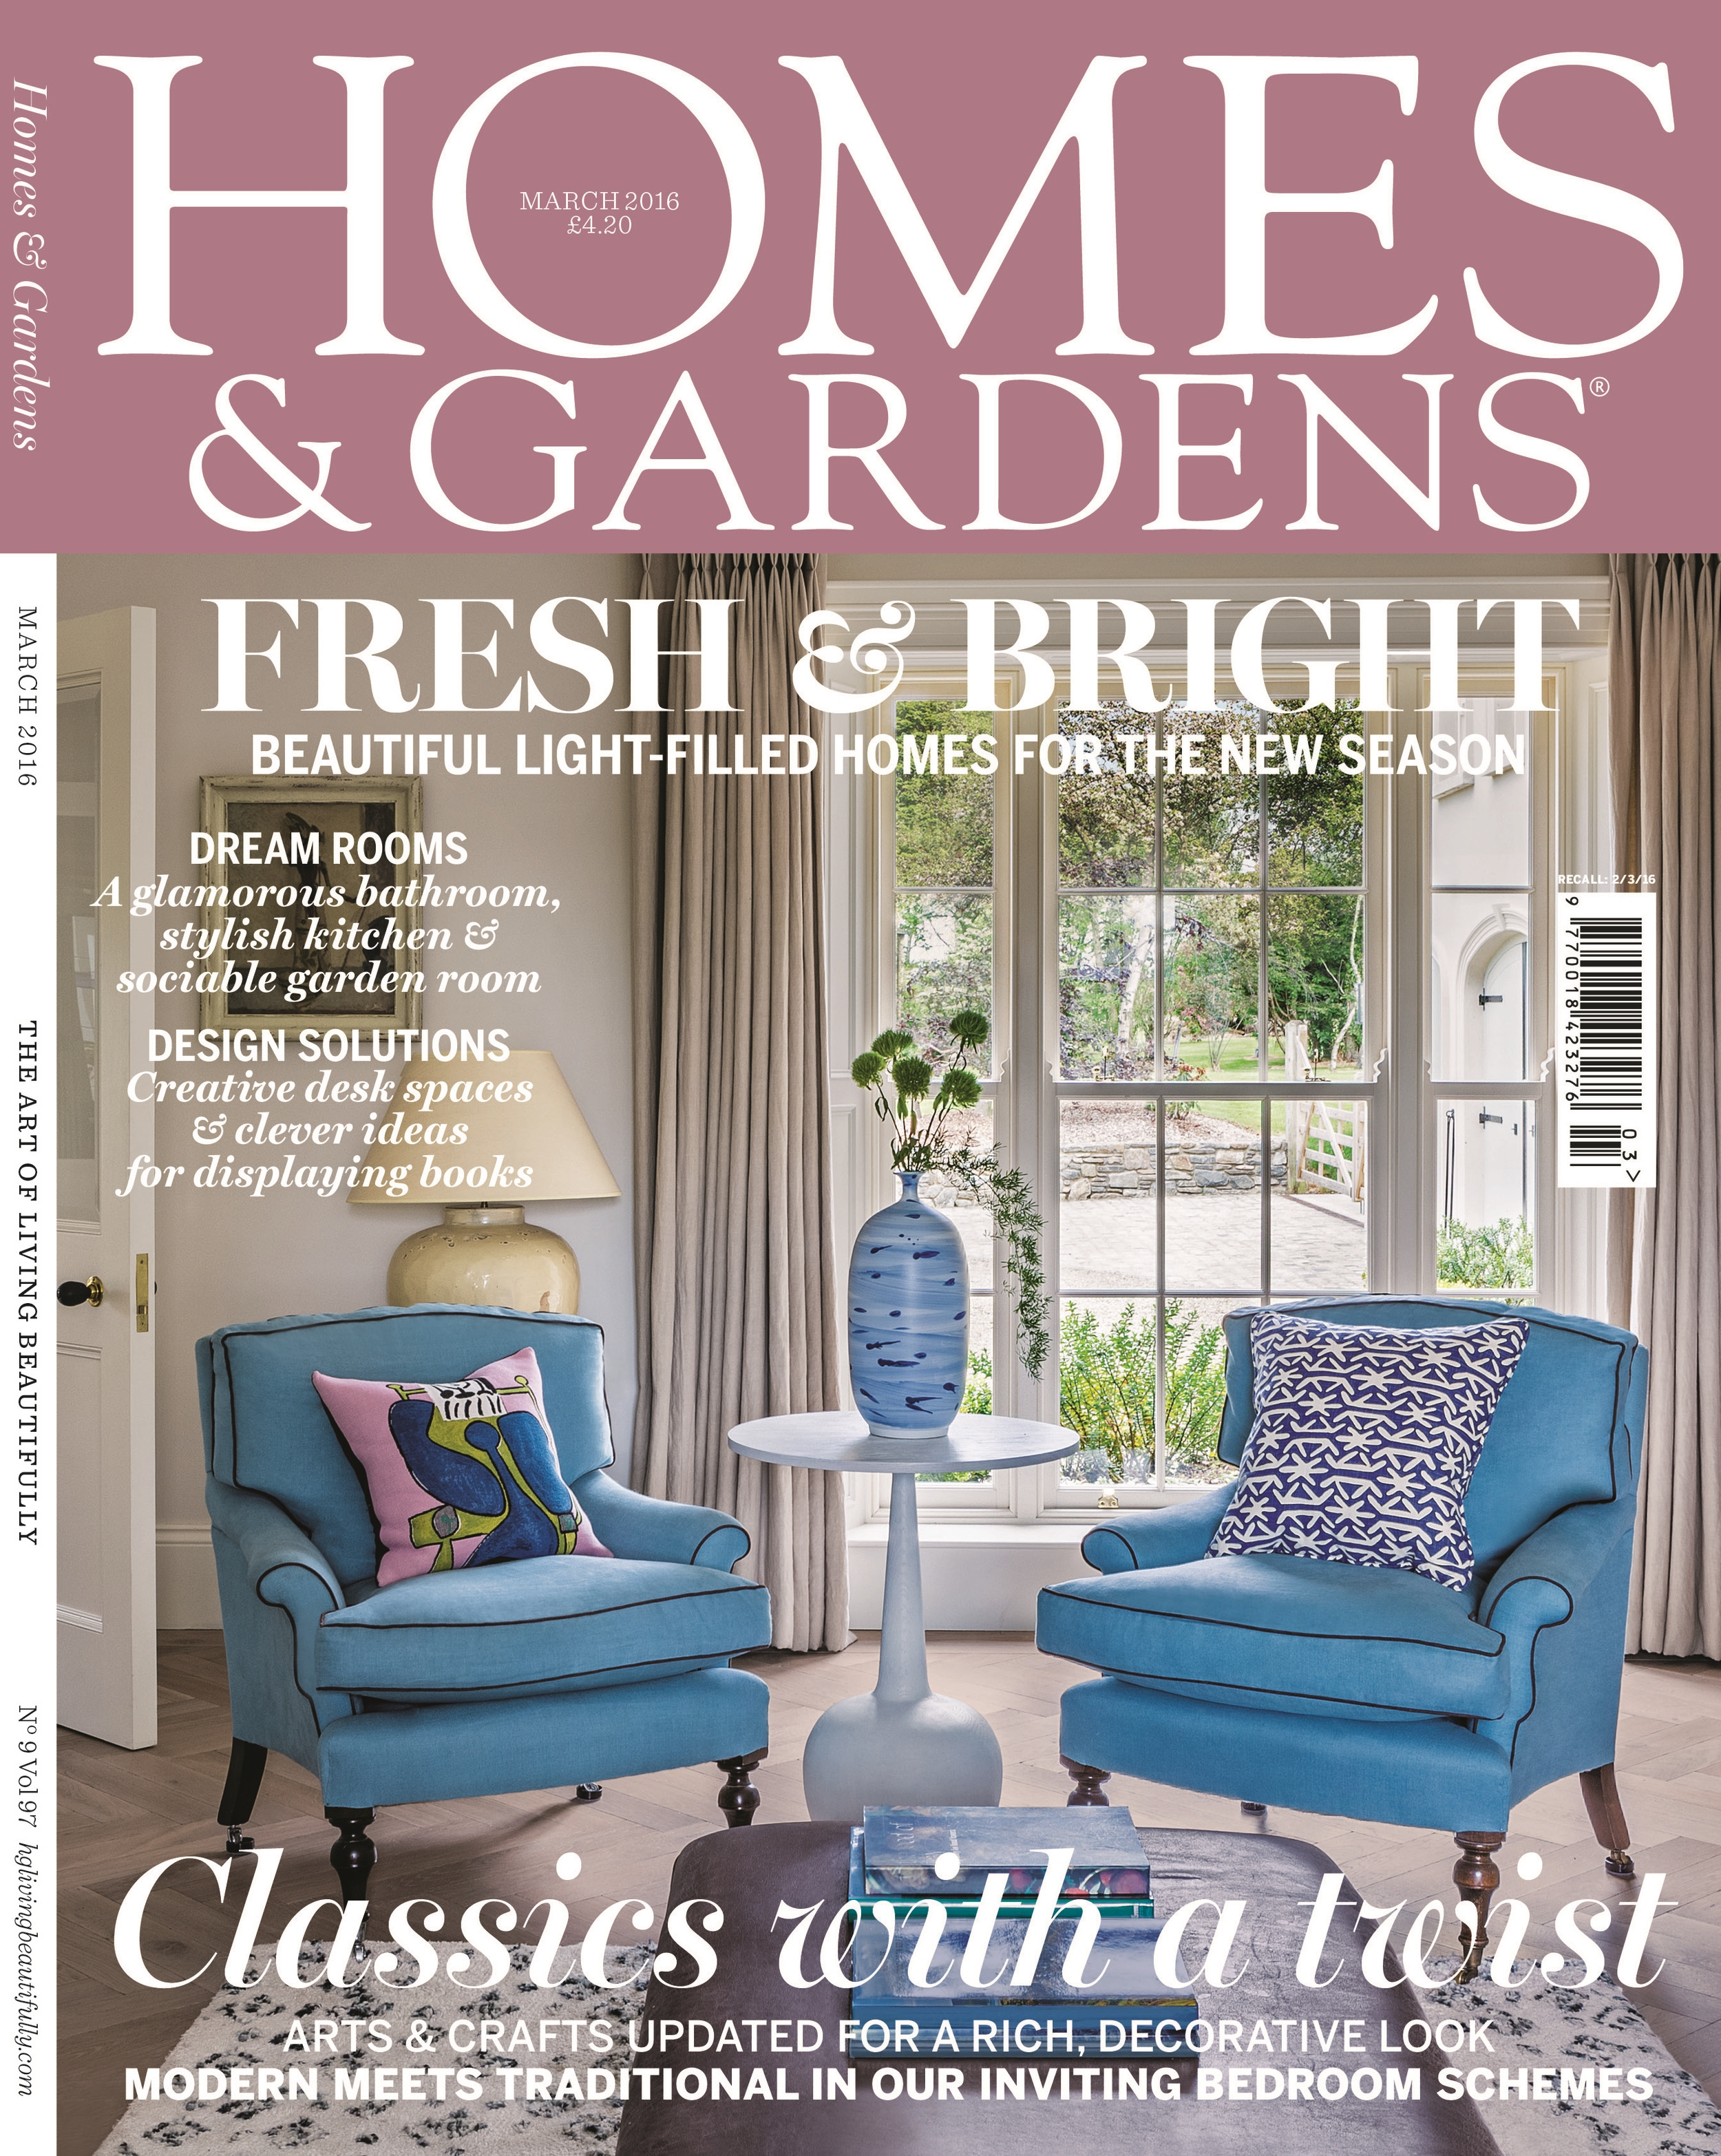 Homes Gardens March 2016